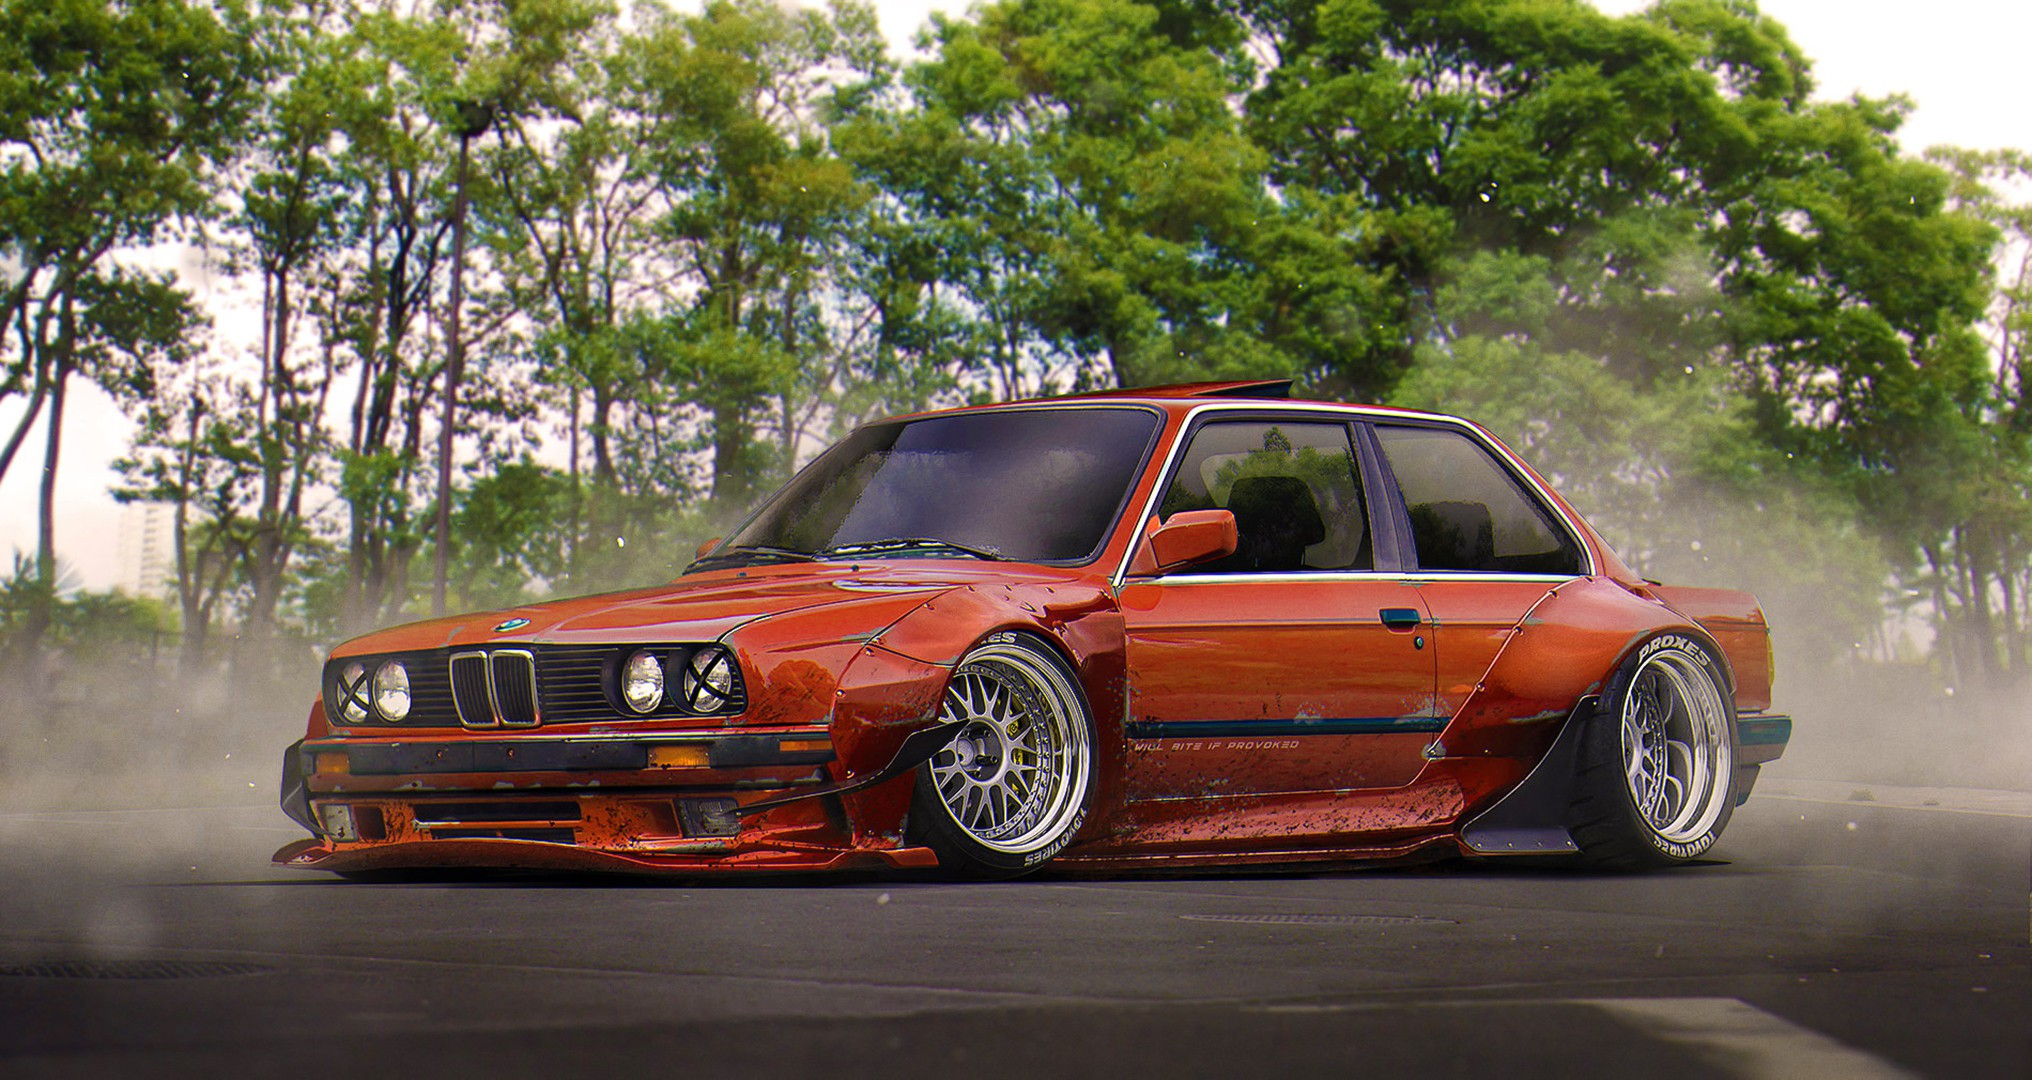 BMW M3 E30 Wallpaper Cars Wallpaper Better